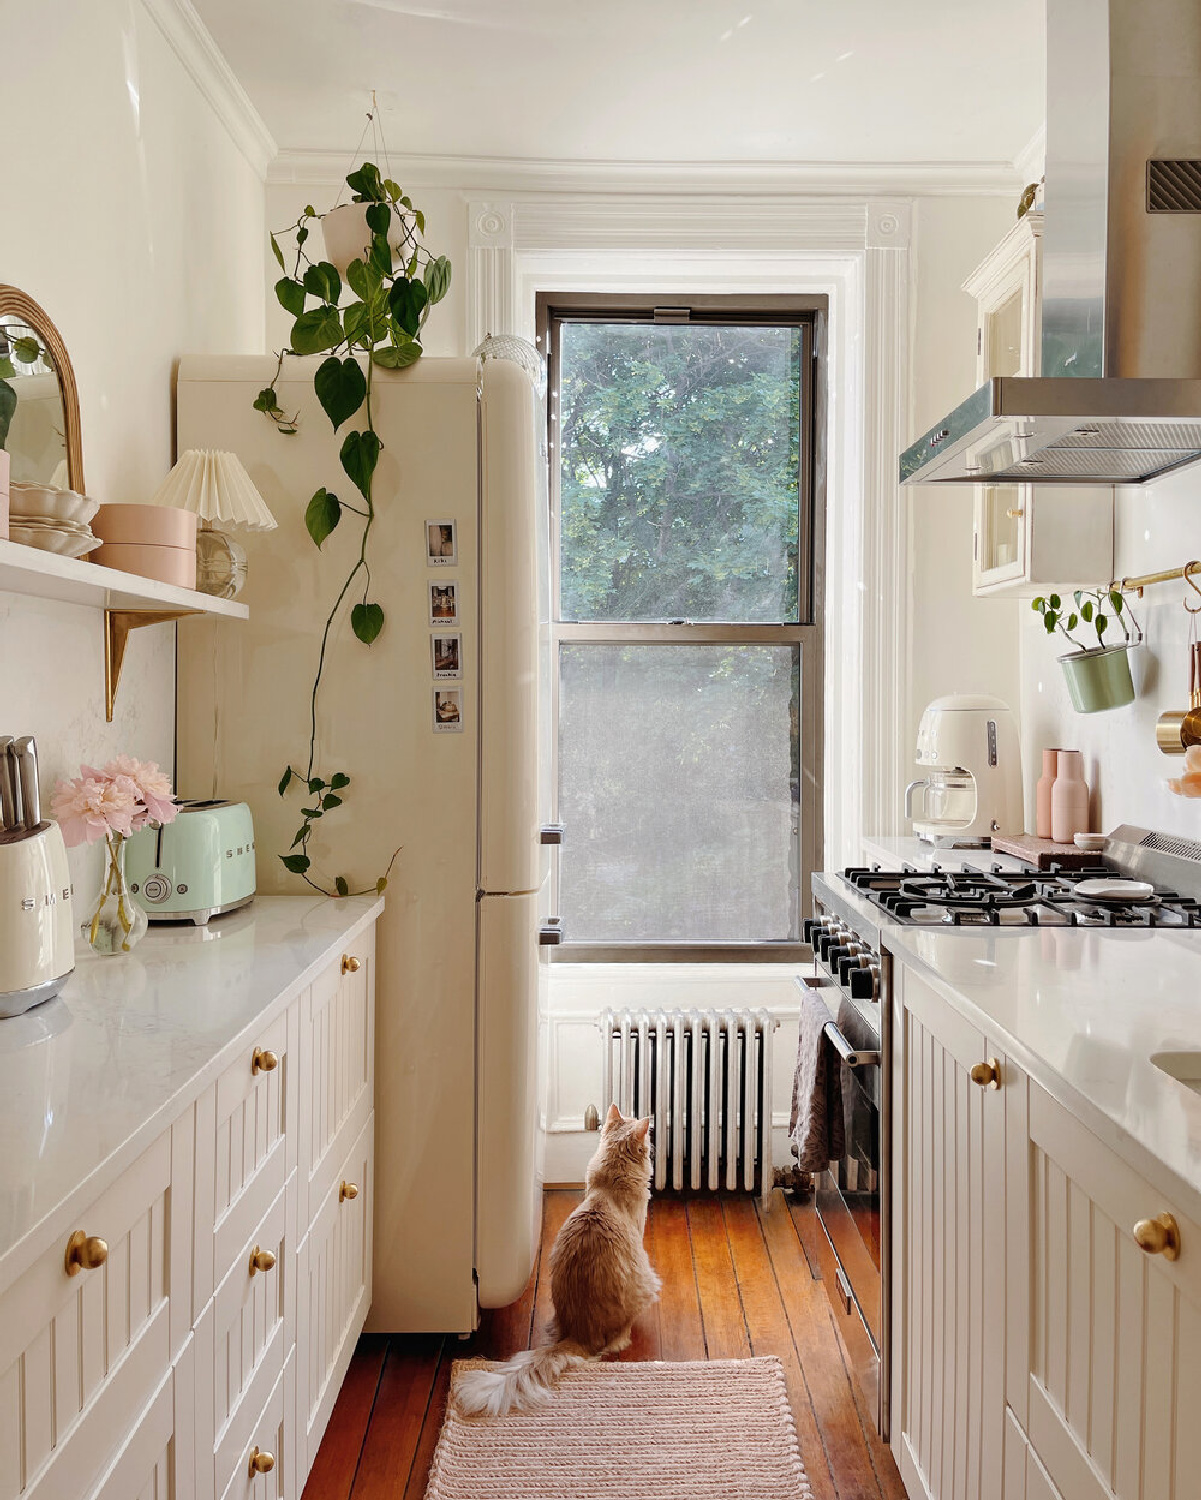 Before and After Brooklyn kitchen remodel with Ikea cabinets and Nieu bespoke cabinet door fronts - design by Reserve-Home. #ikeacabinets #refacedcabinets #beforeandafter #kitchenremodel